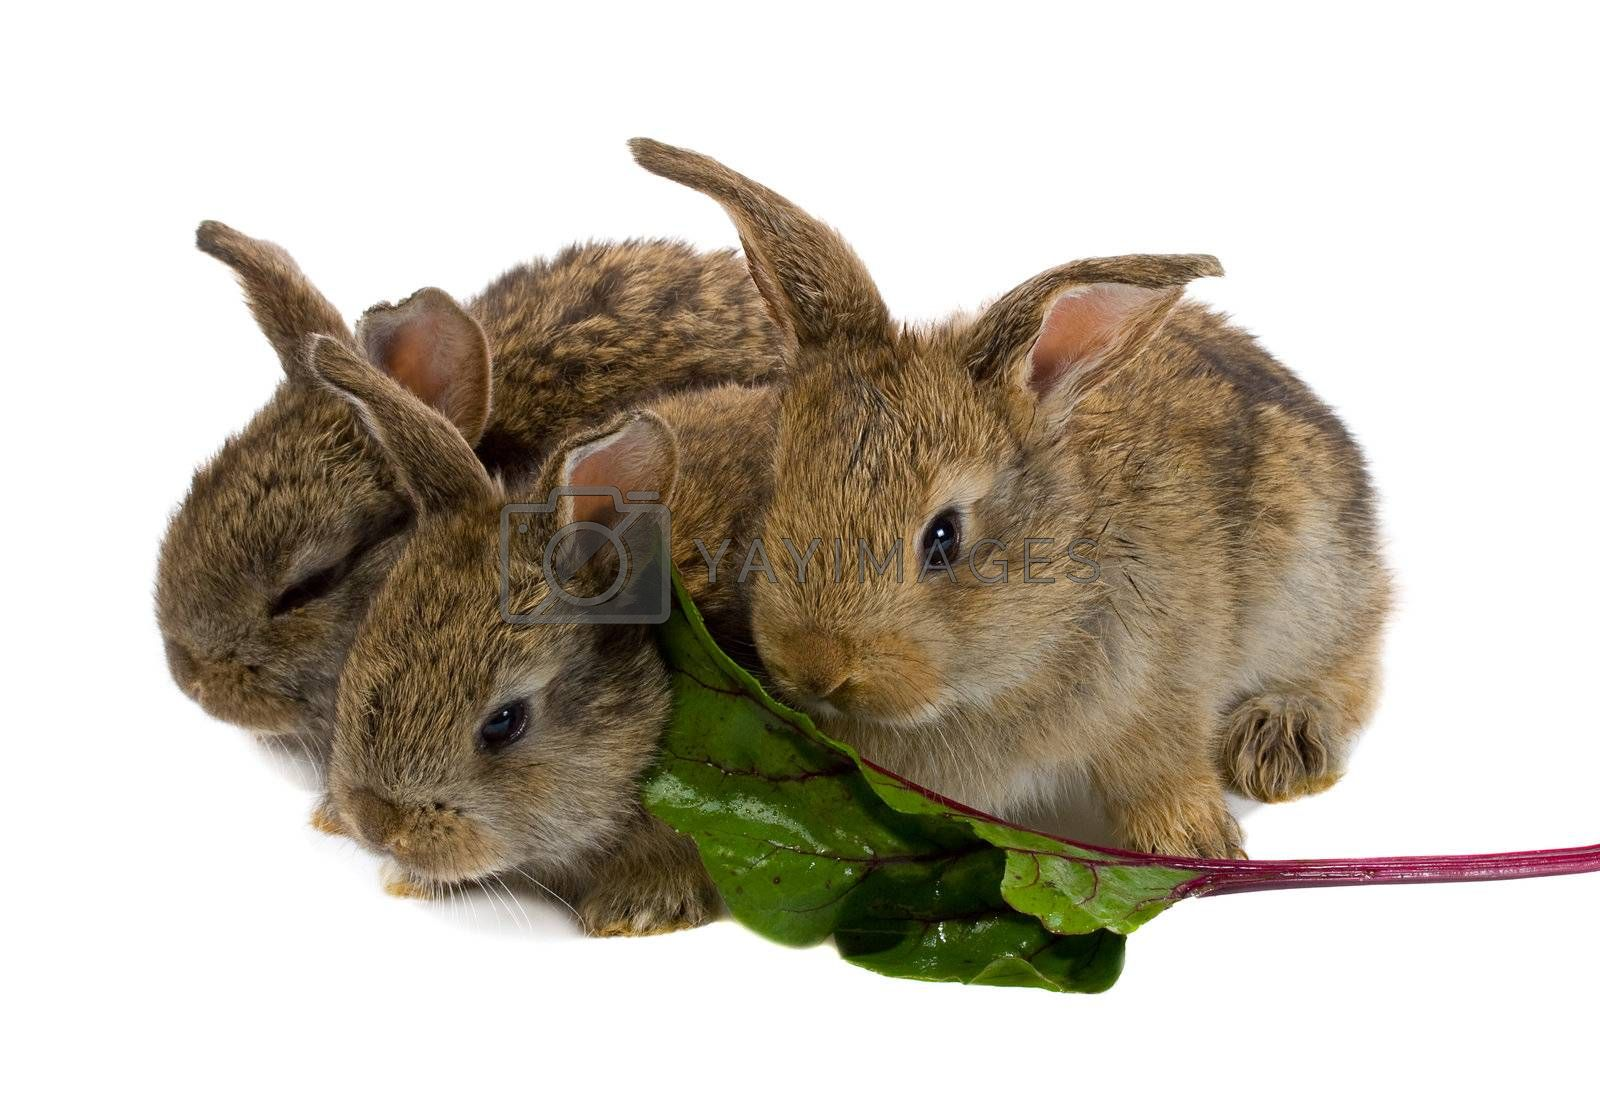 tree little rabbits eating the leaf of red beet by Alekcey